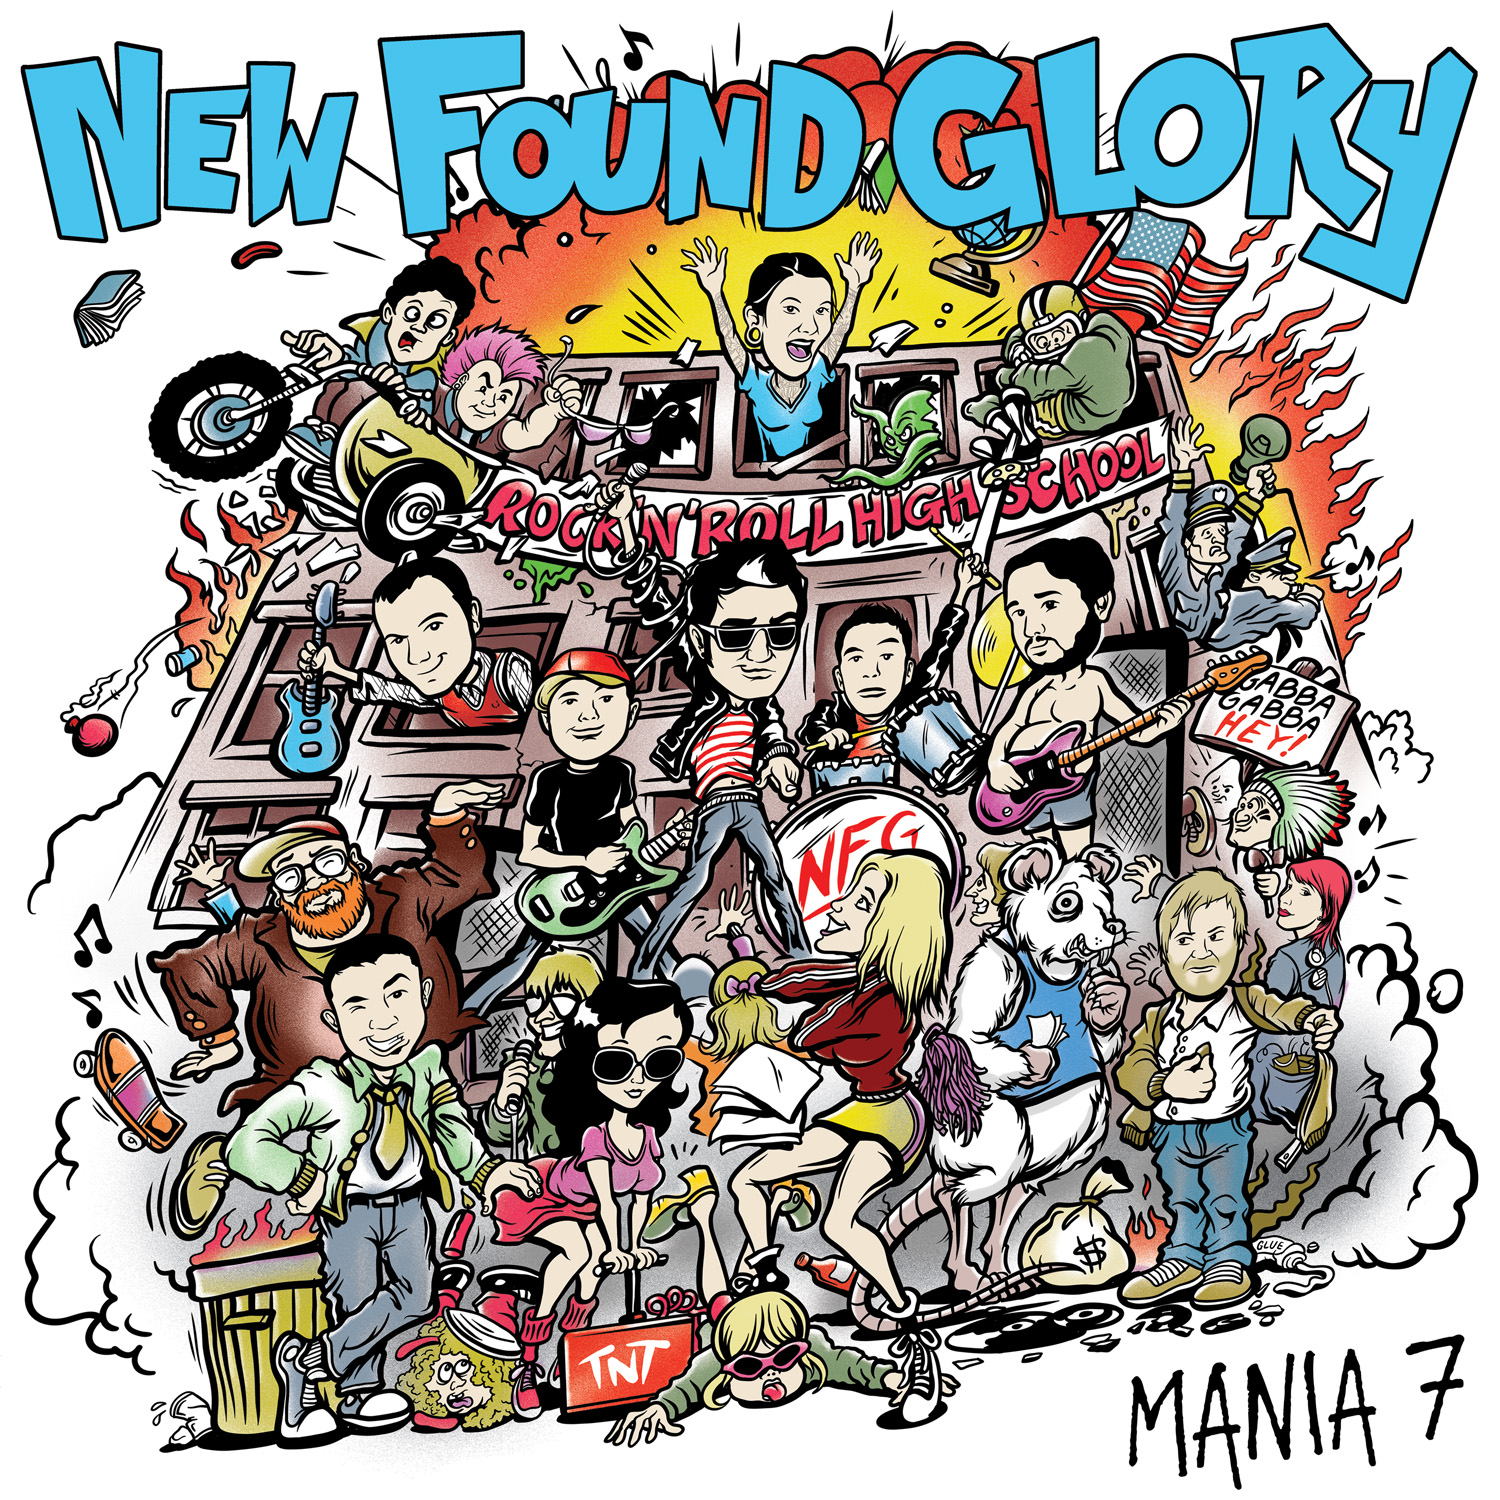 New Found Glory - 'Mania' 12-inch - Record Store Day 2013 | Alternative Press